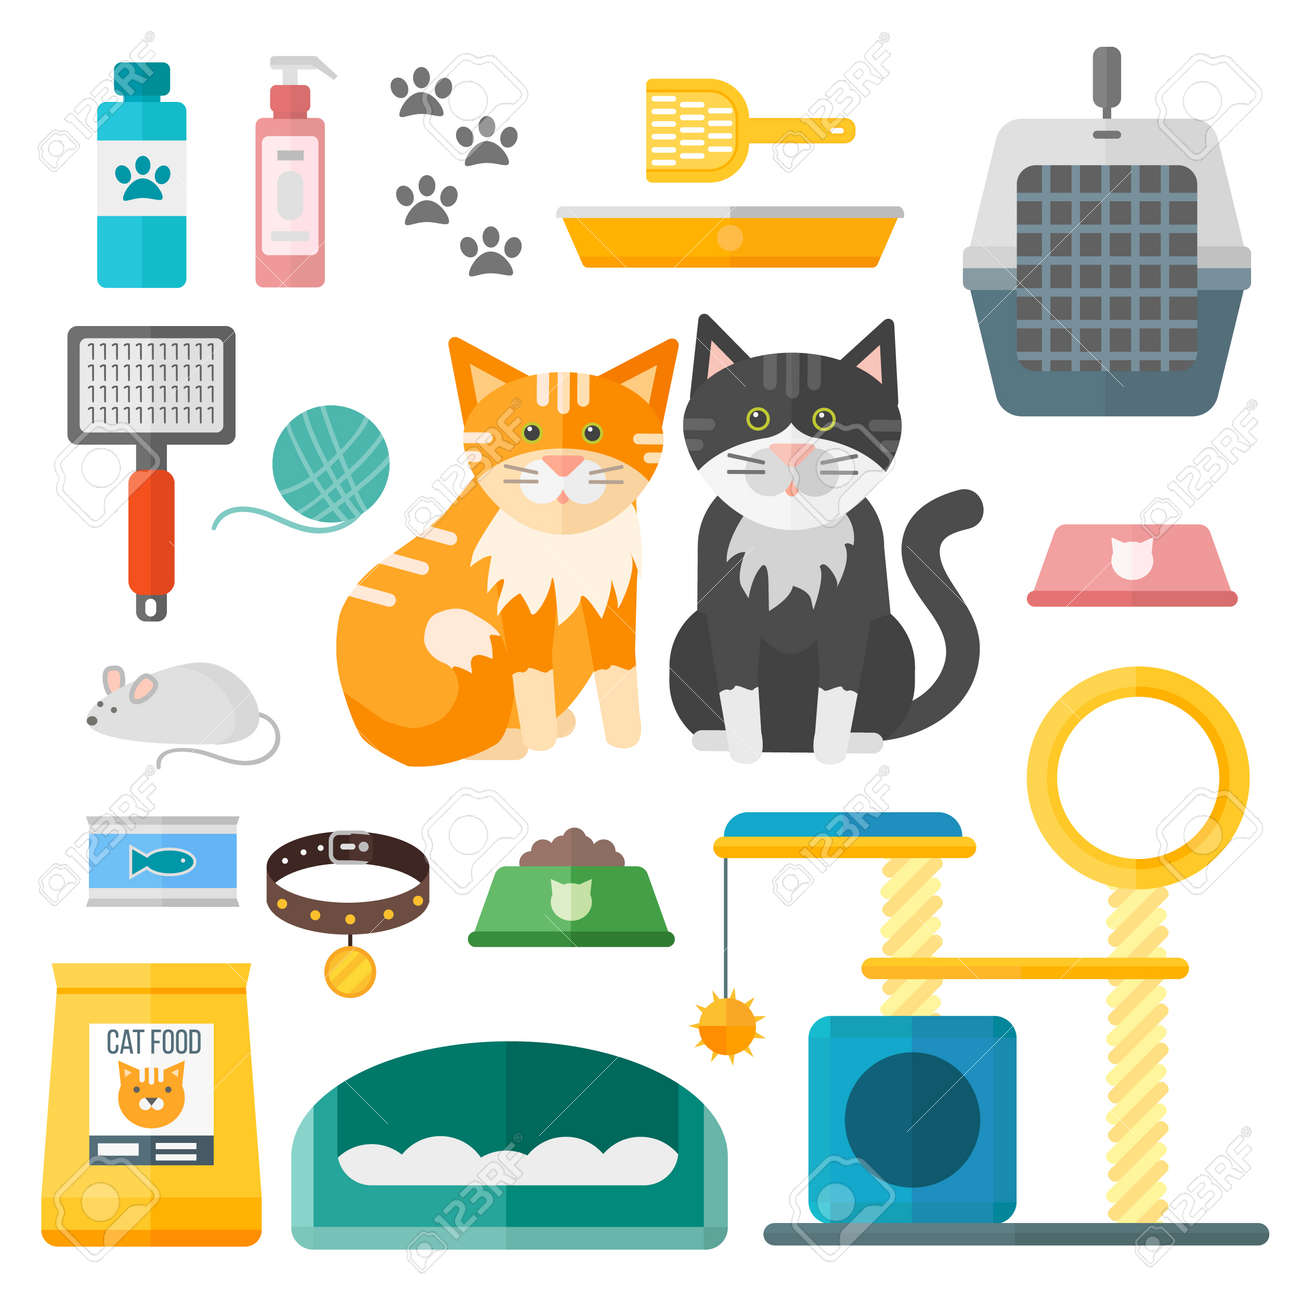 Pet supplies cat accessories animal equipment care grooming tools vector set. Cat accessories and food, domestic feline cat accessories. Cartoon animal kitten safety cat grooming accessory. - 55751359